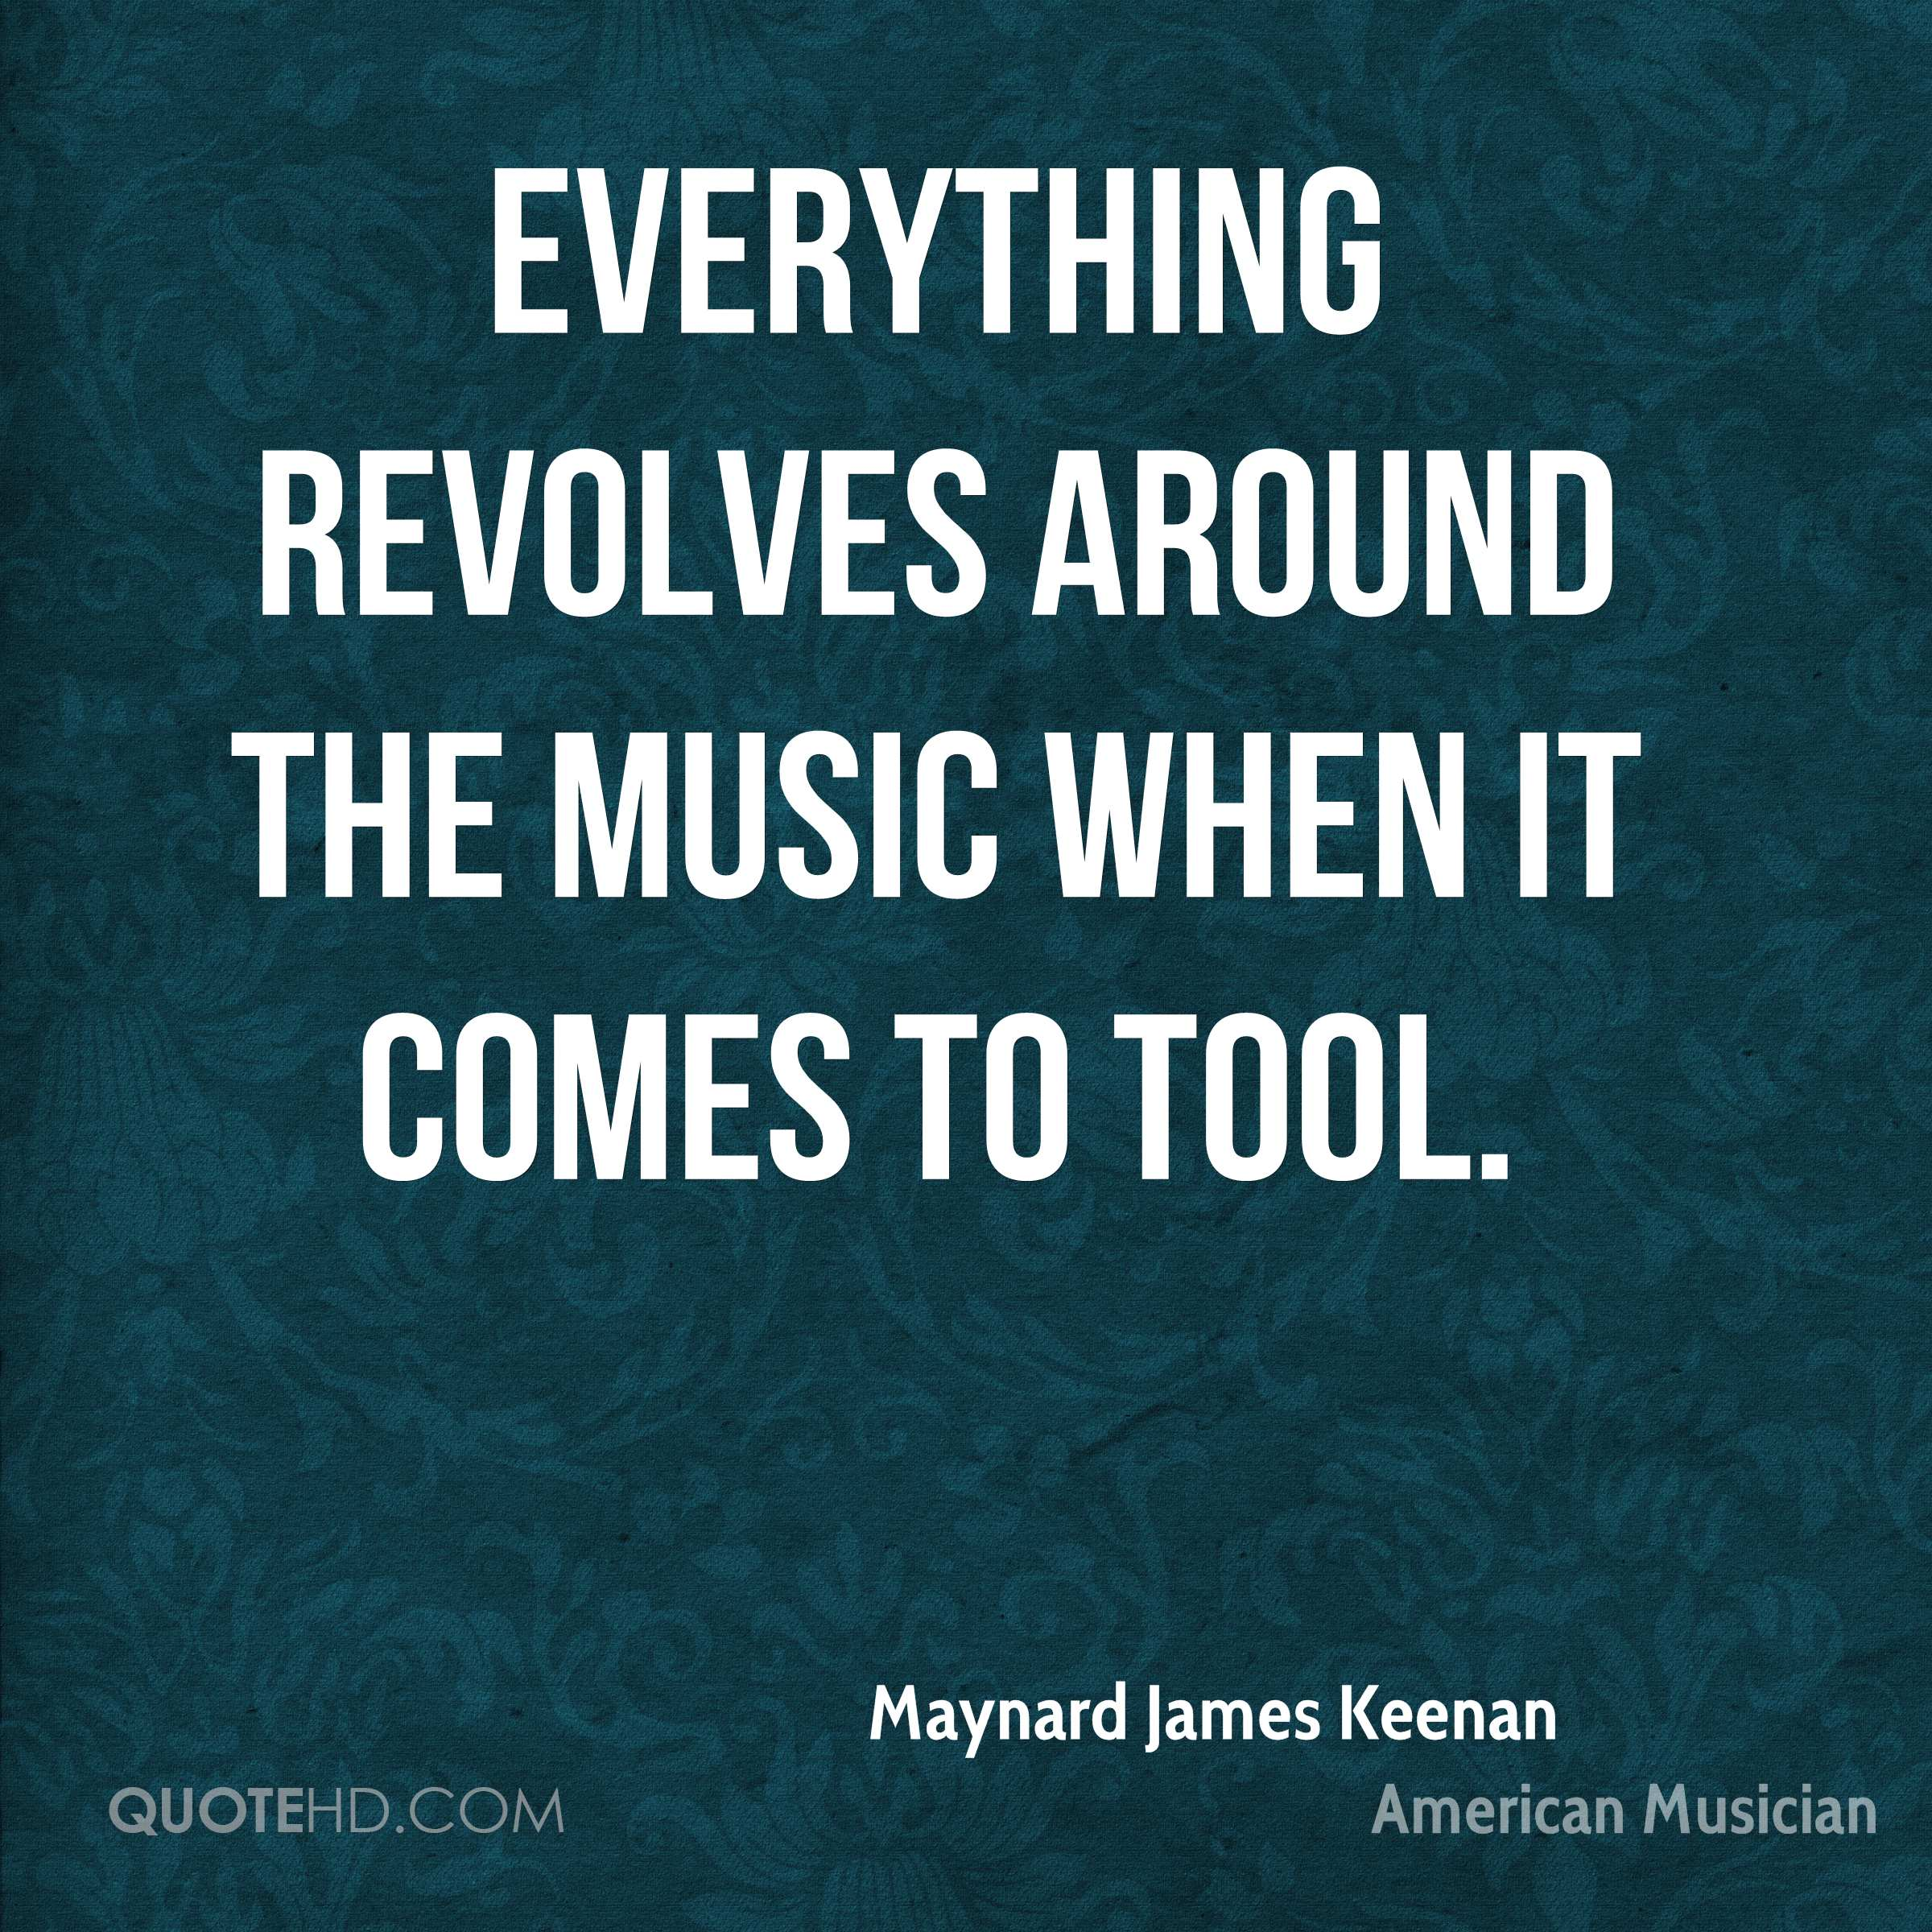 Everything revolves around the music when it comes to Tool.